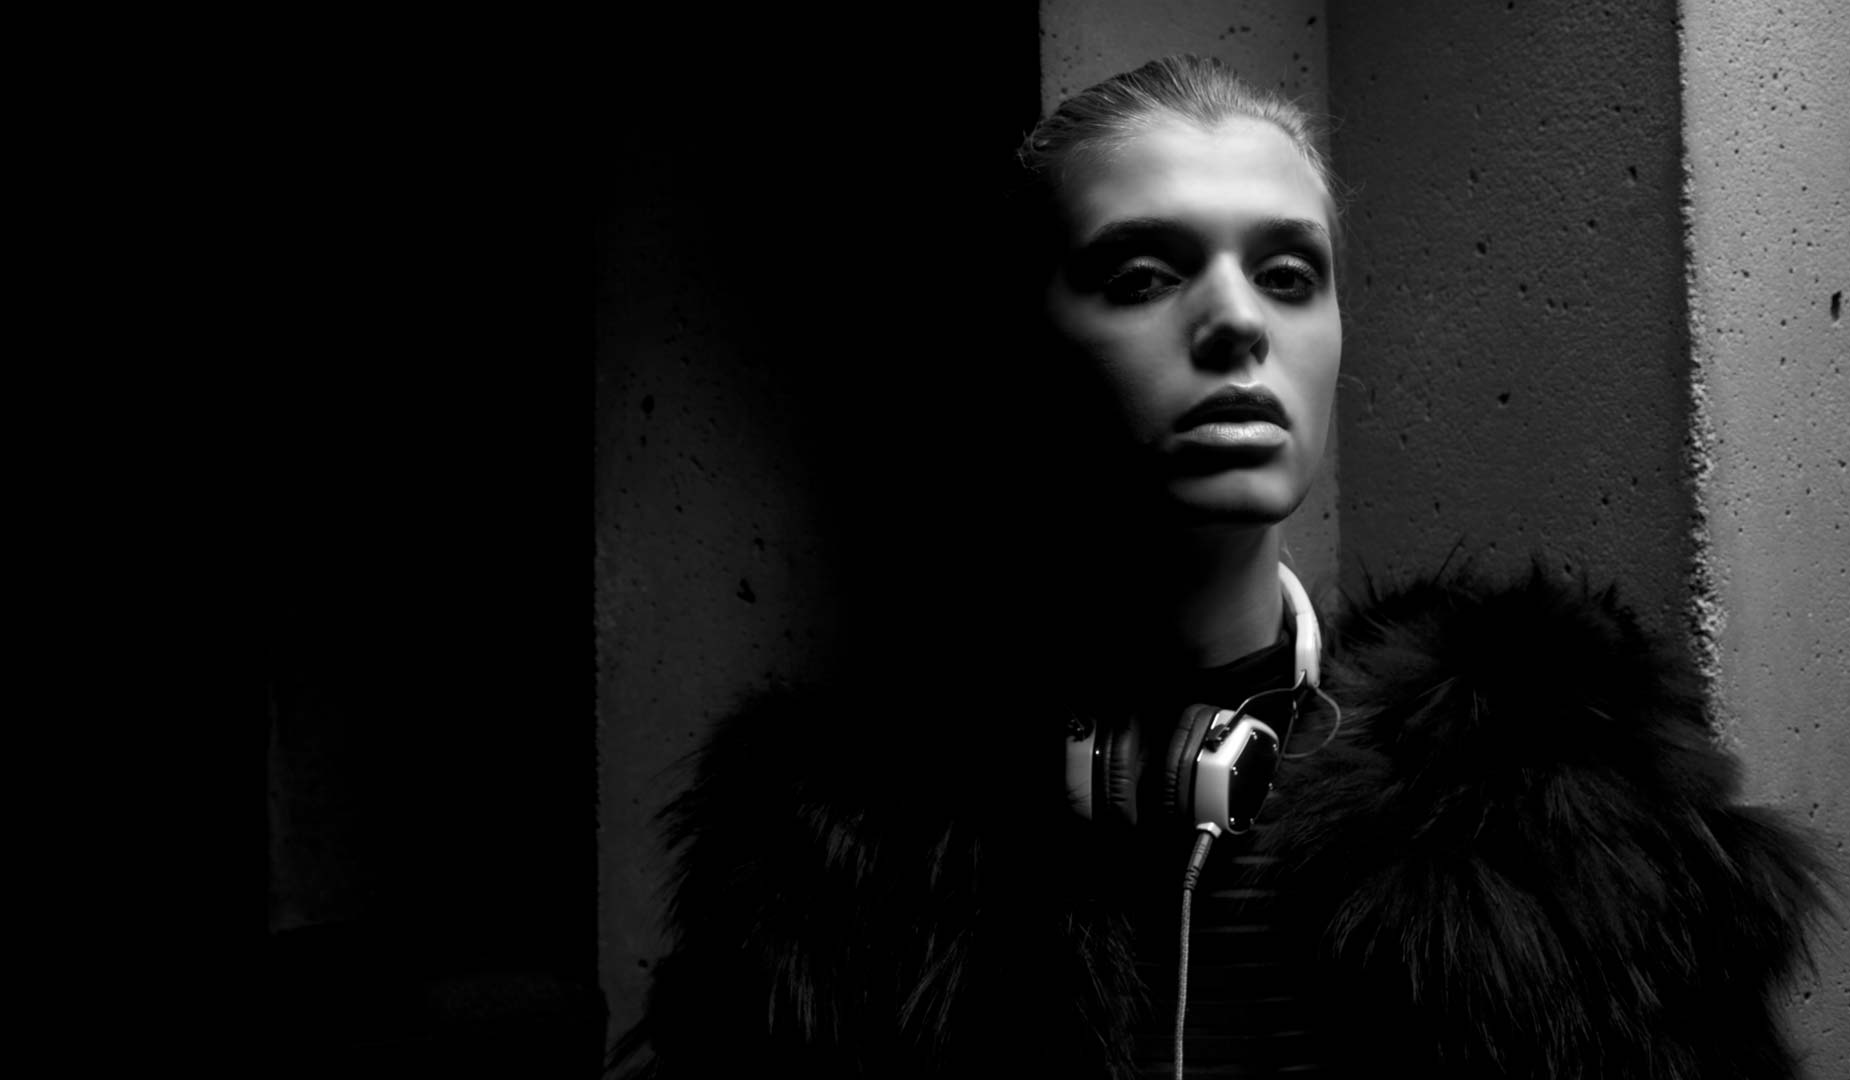 Model Wearing Headphones and Fur